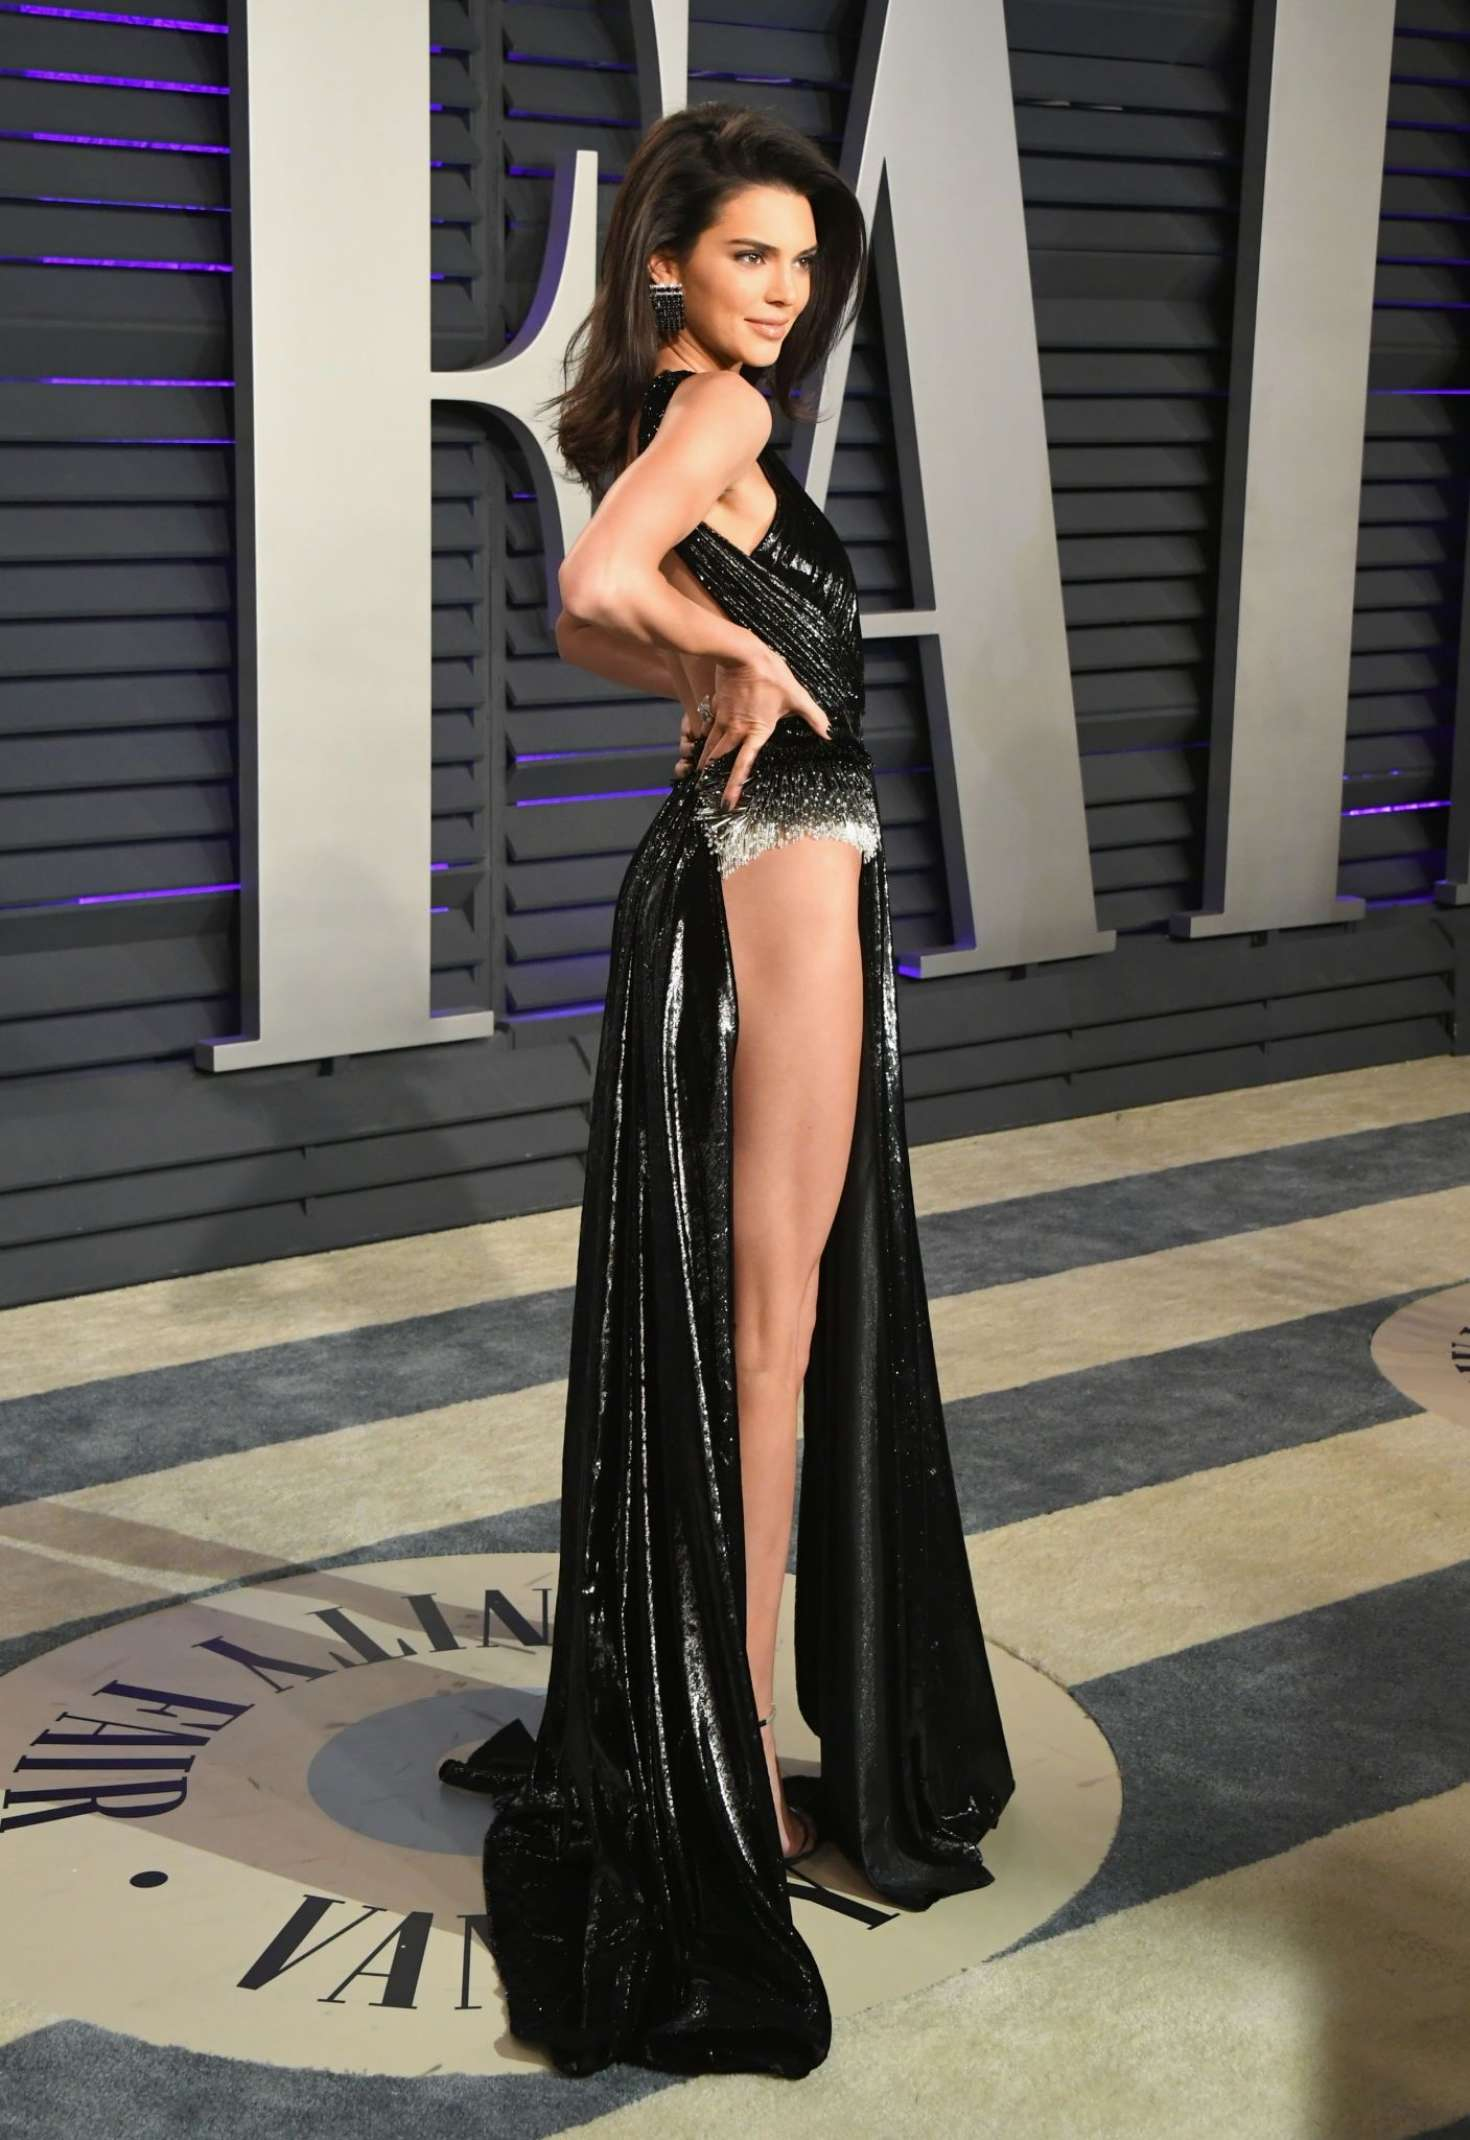 Kendall Jenner in dress with cut on full leg at Vanity Fair Oscar Party in Beverly Hills, 2019